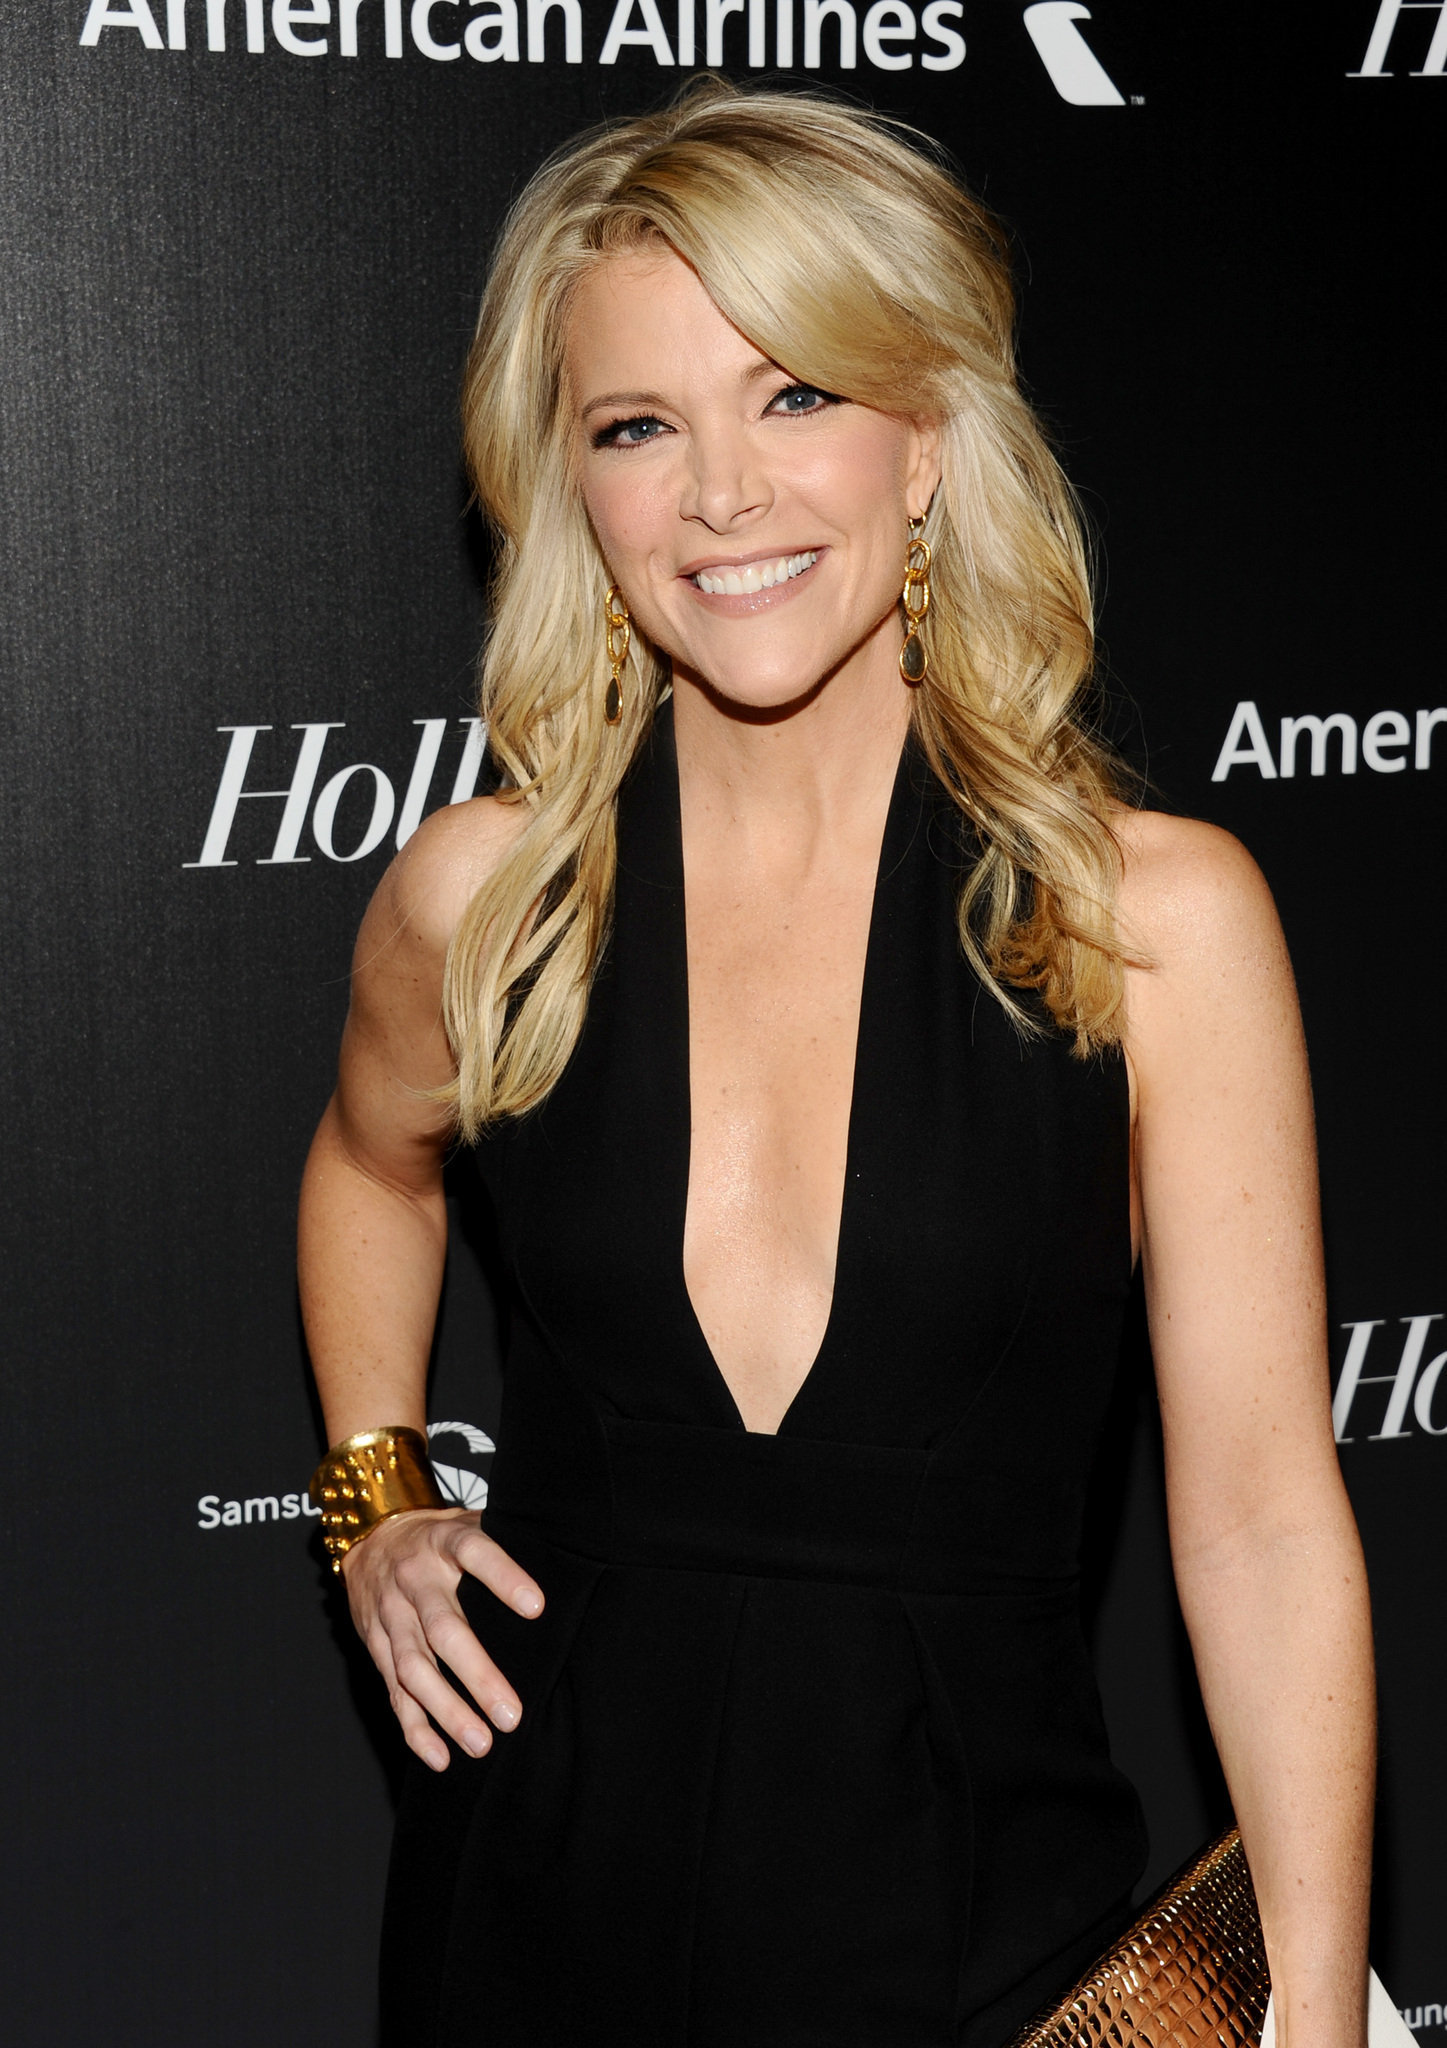 Image result for hot images of Megyn Kelly